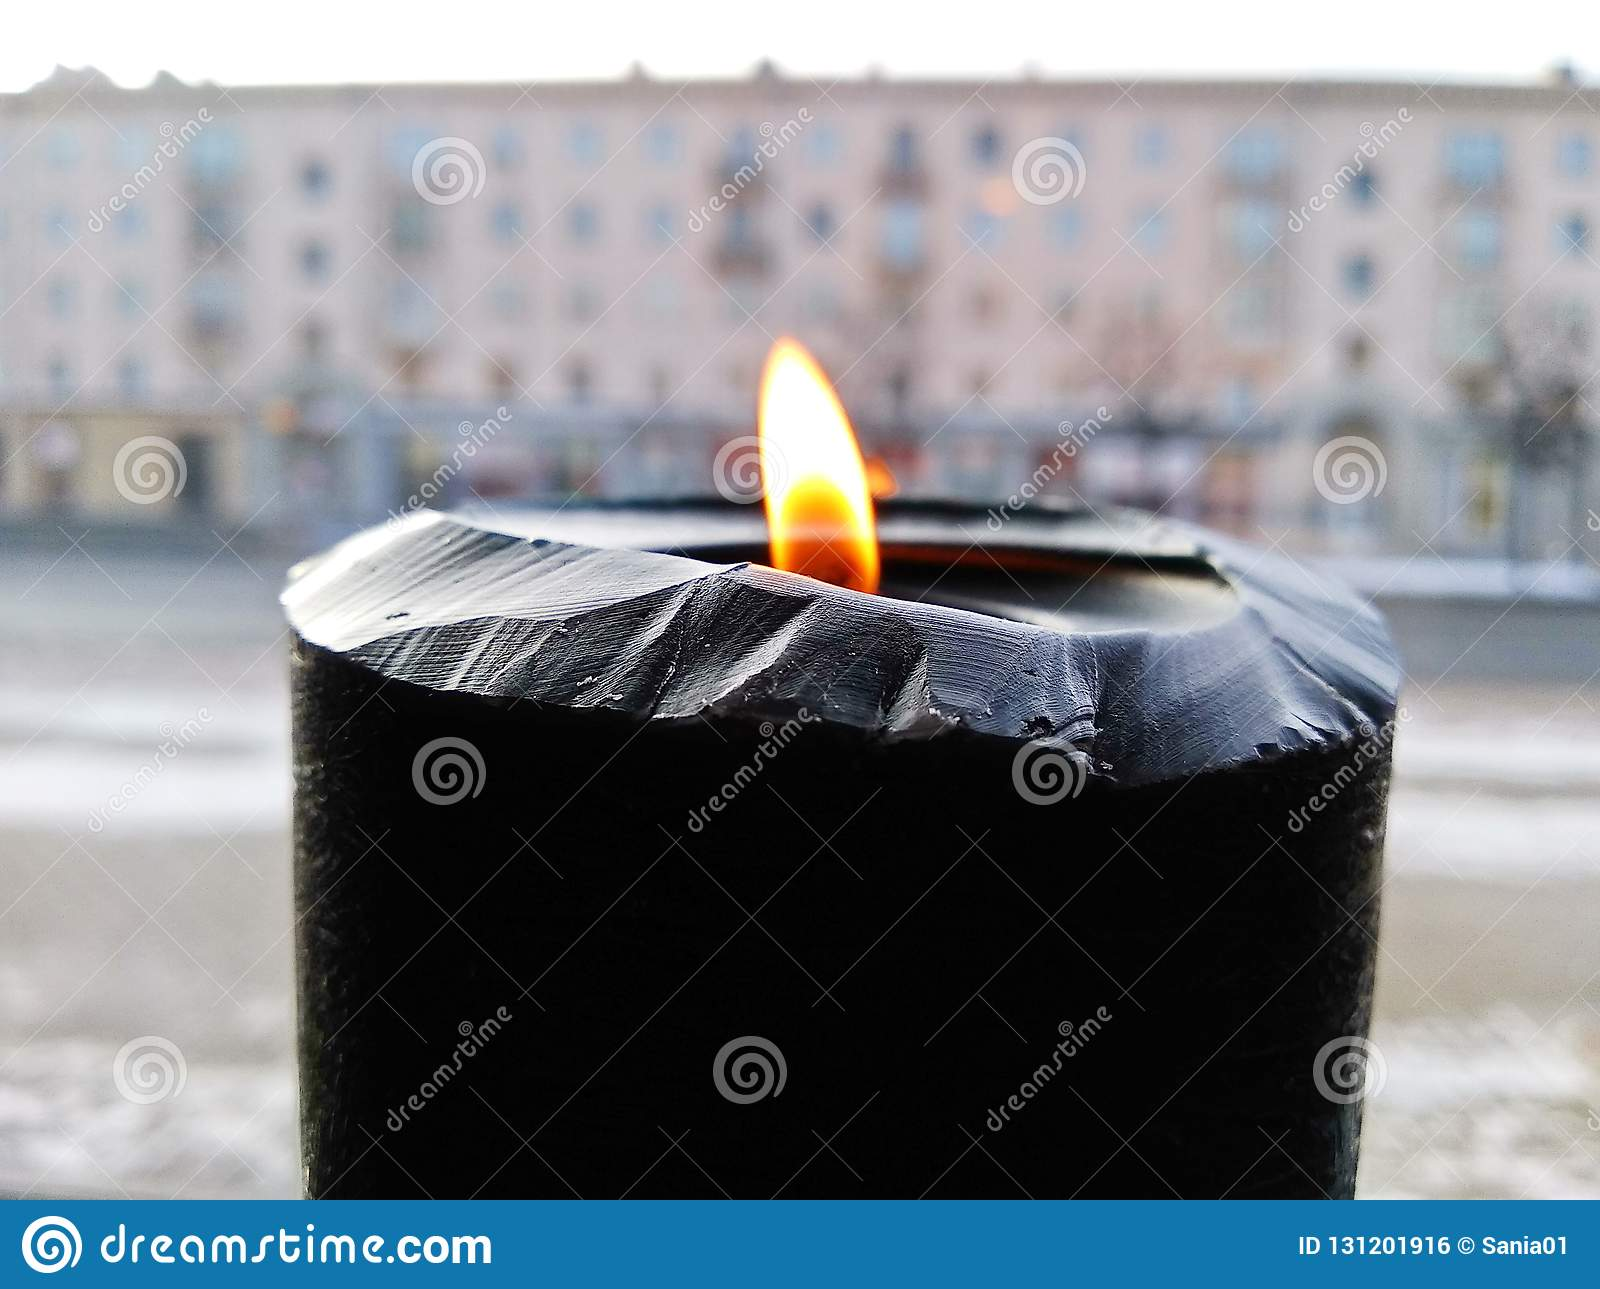 Black Burning Candle On City Background Outdoor. Stock ...